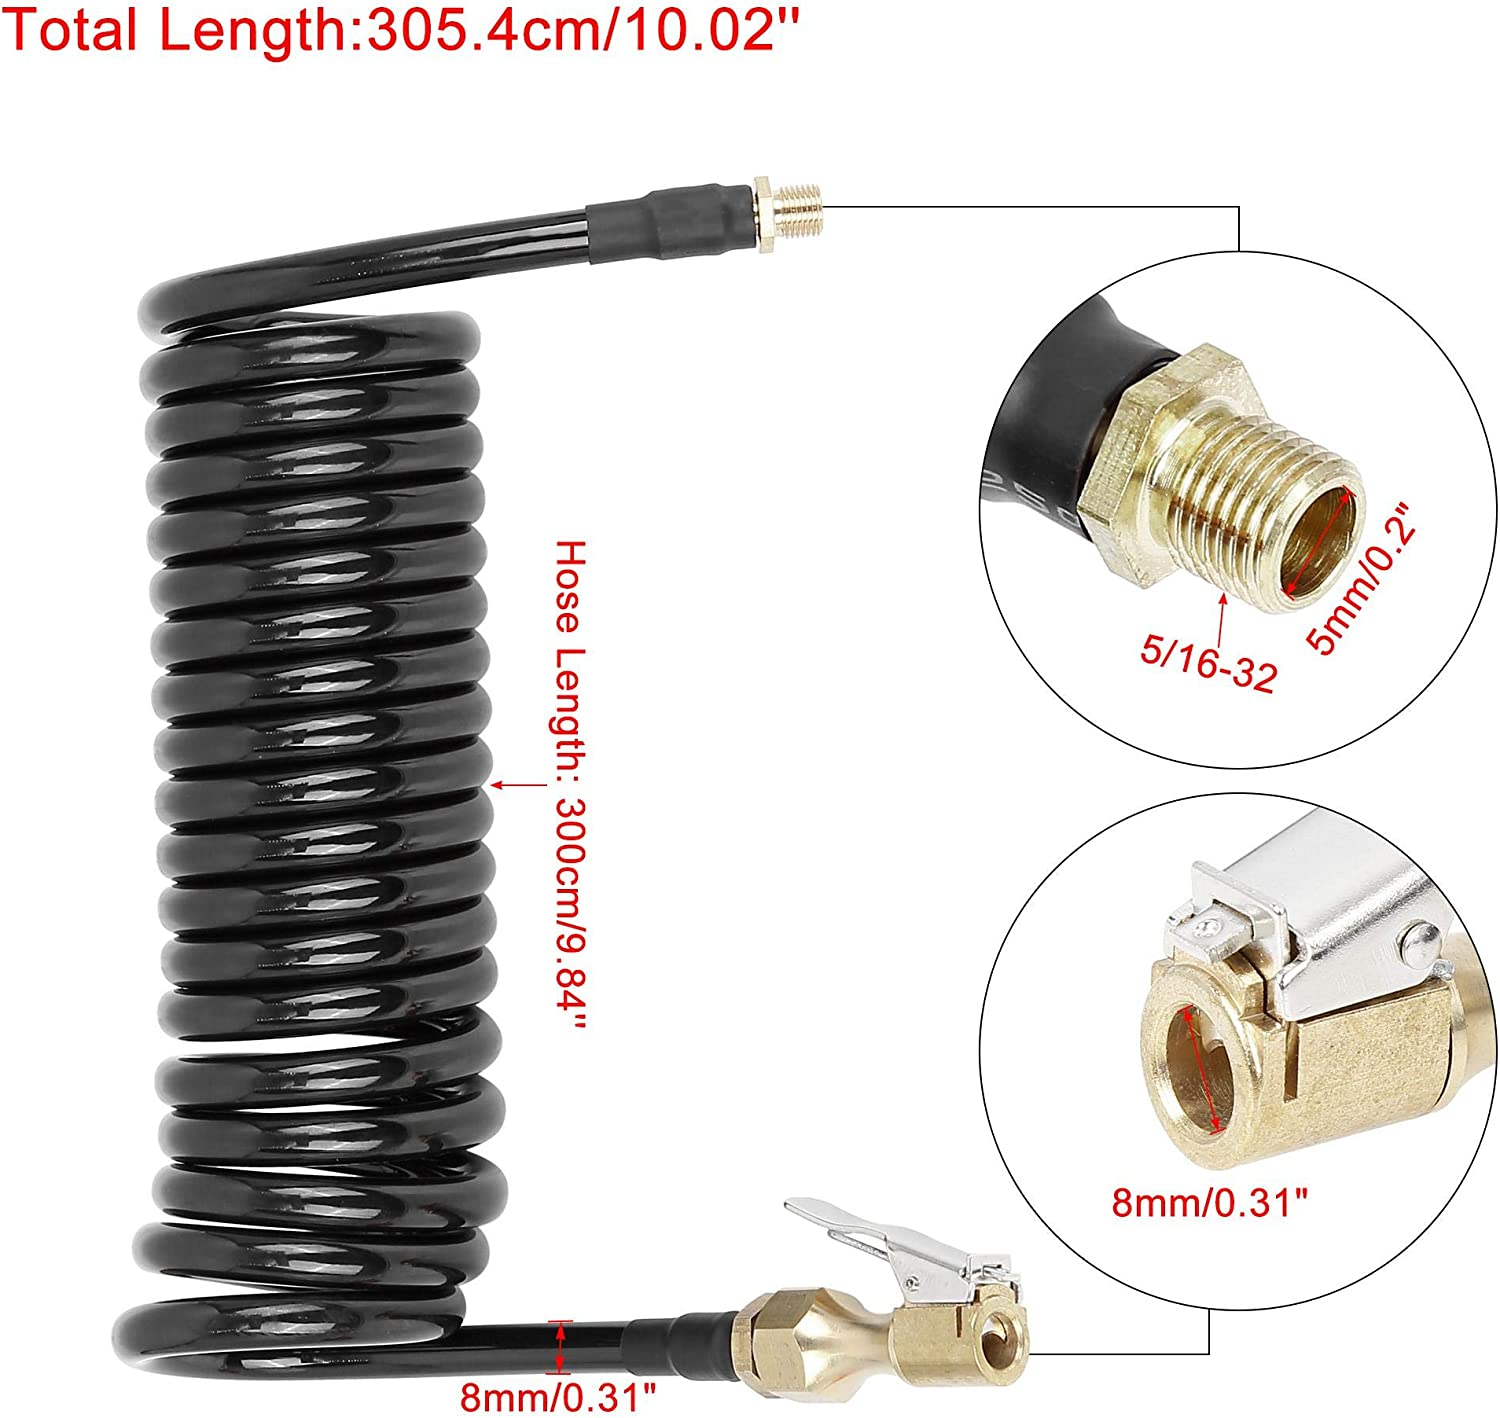 X AUTOHAUX Black Car Flexible Tire Inflator Hose with Locking Air Chuck 0.31 Outer Diameter by 9.84 Long Air Hose with 5//16-32 Quick Fittings